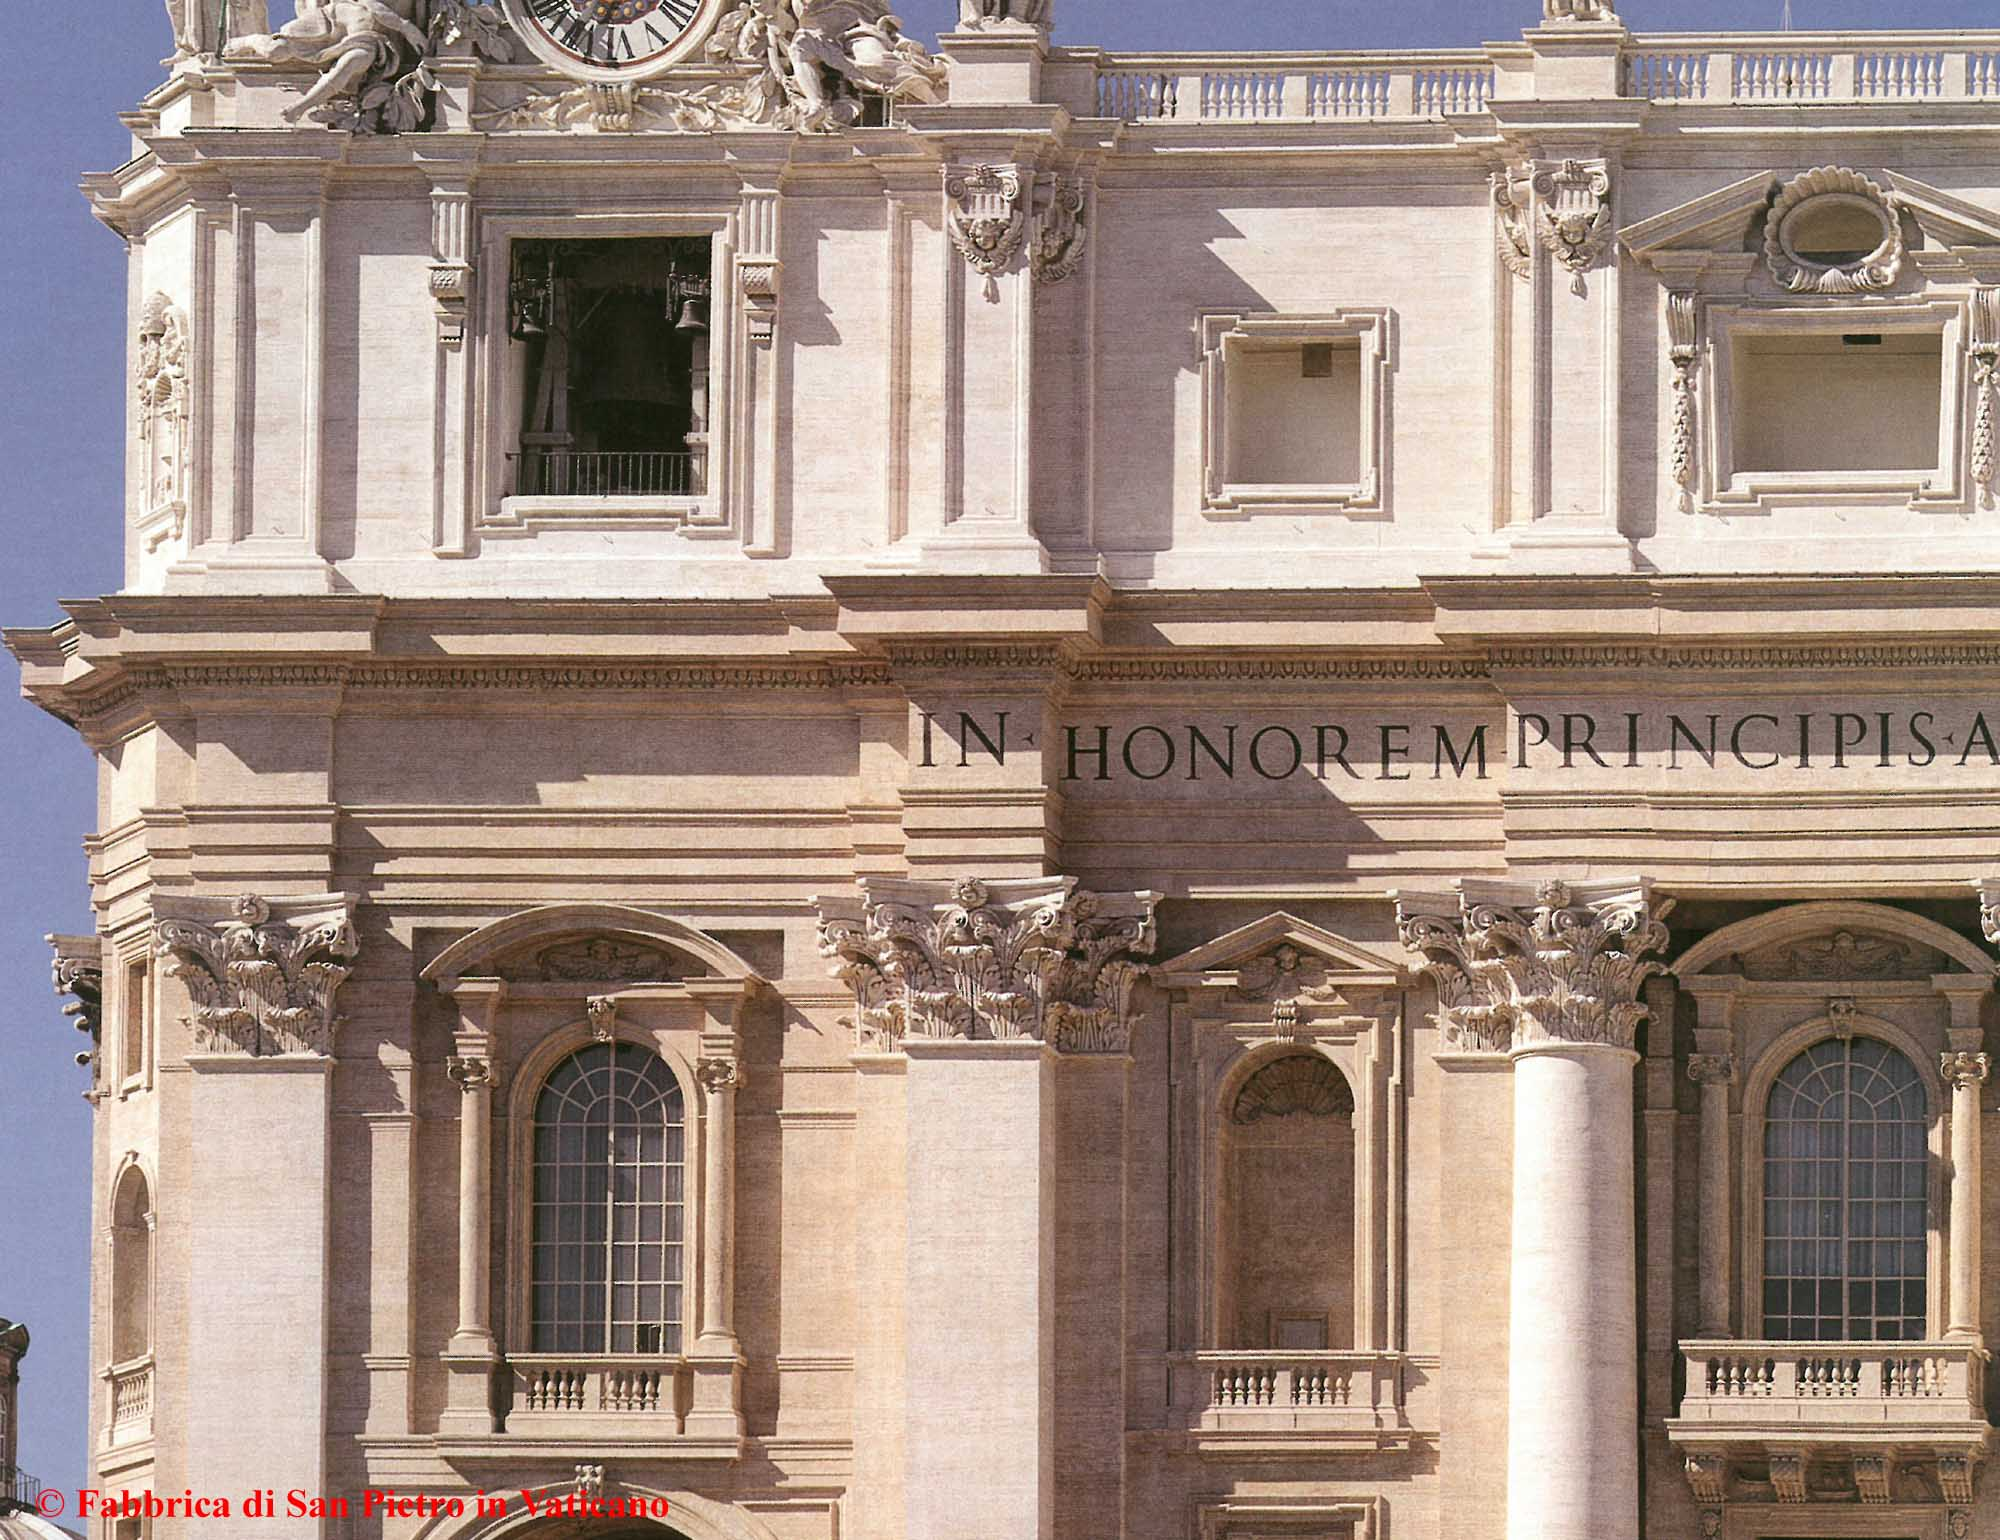 Facade of St Peter's Basilica